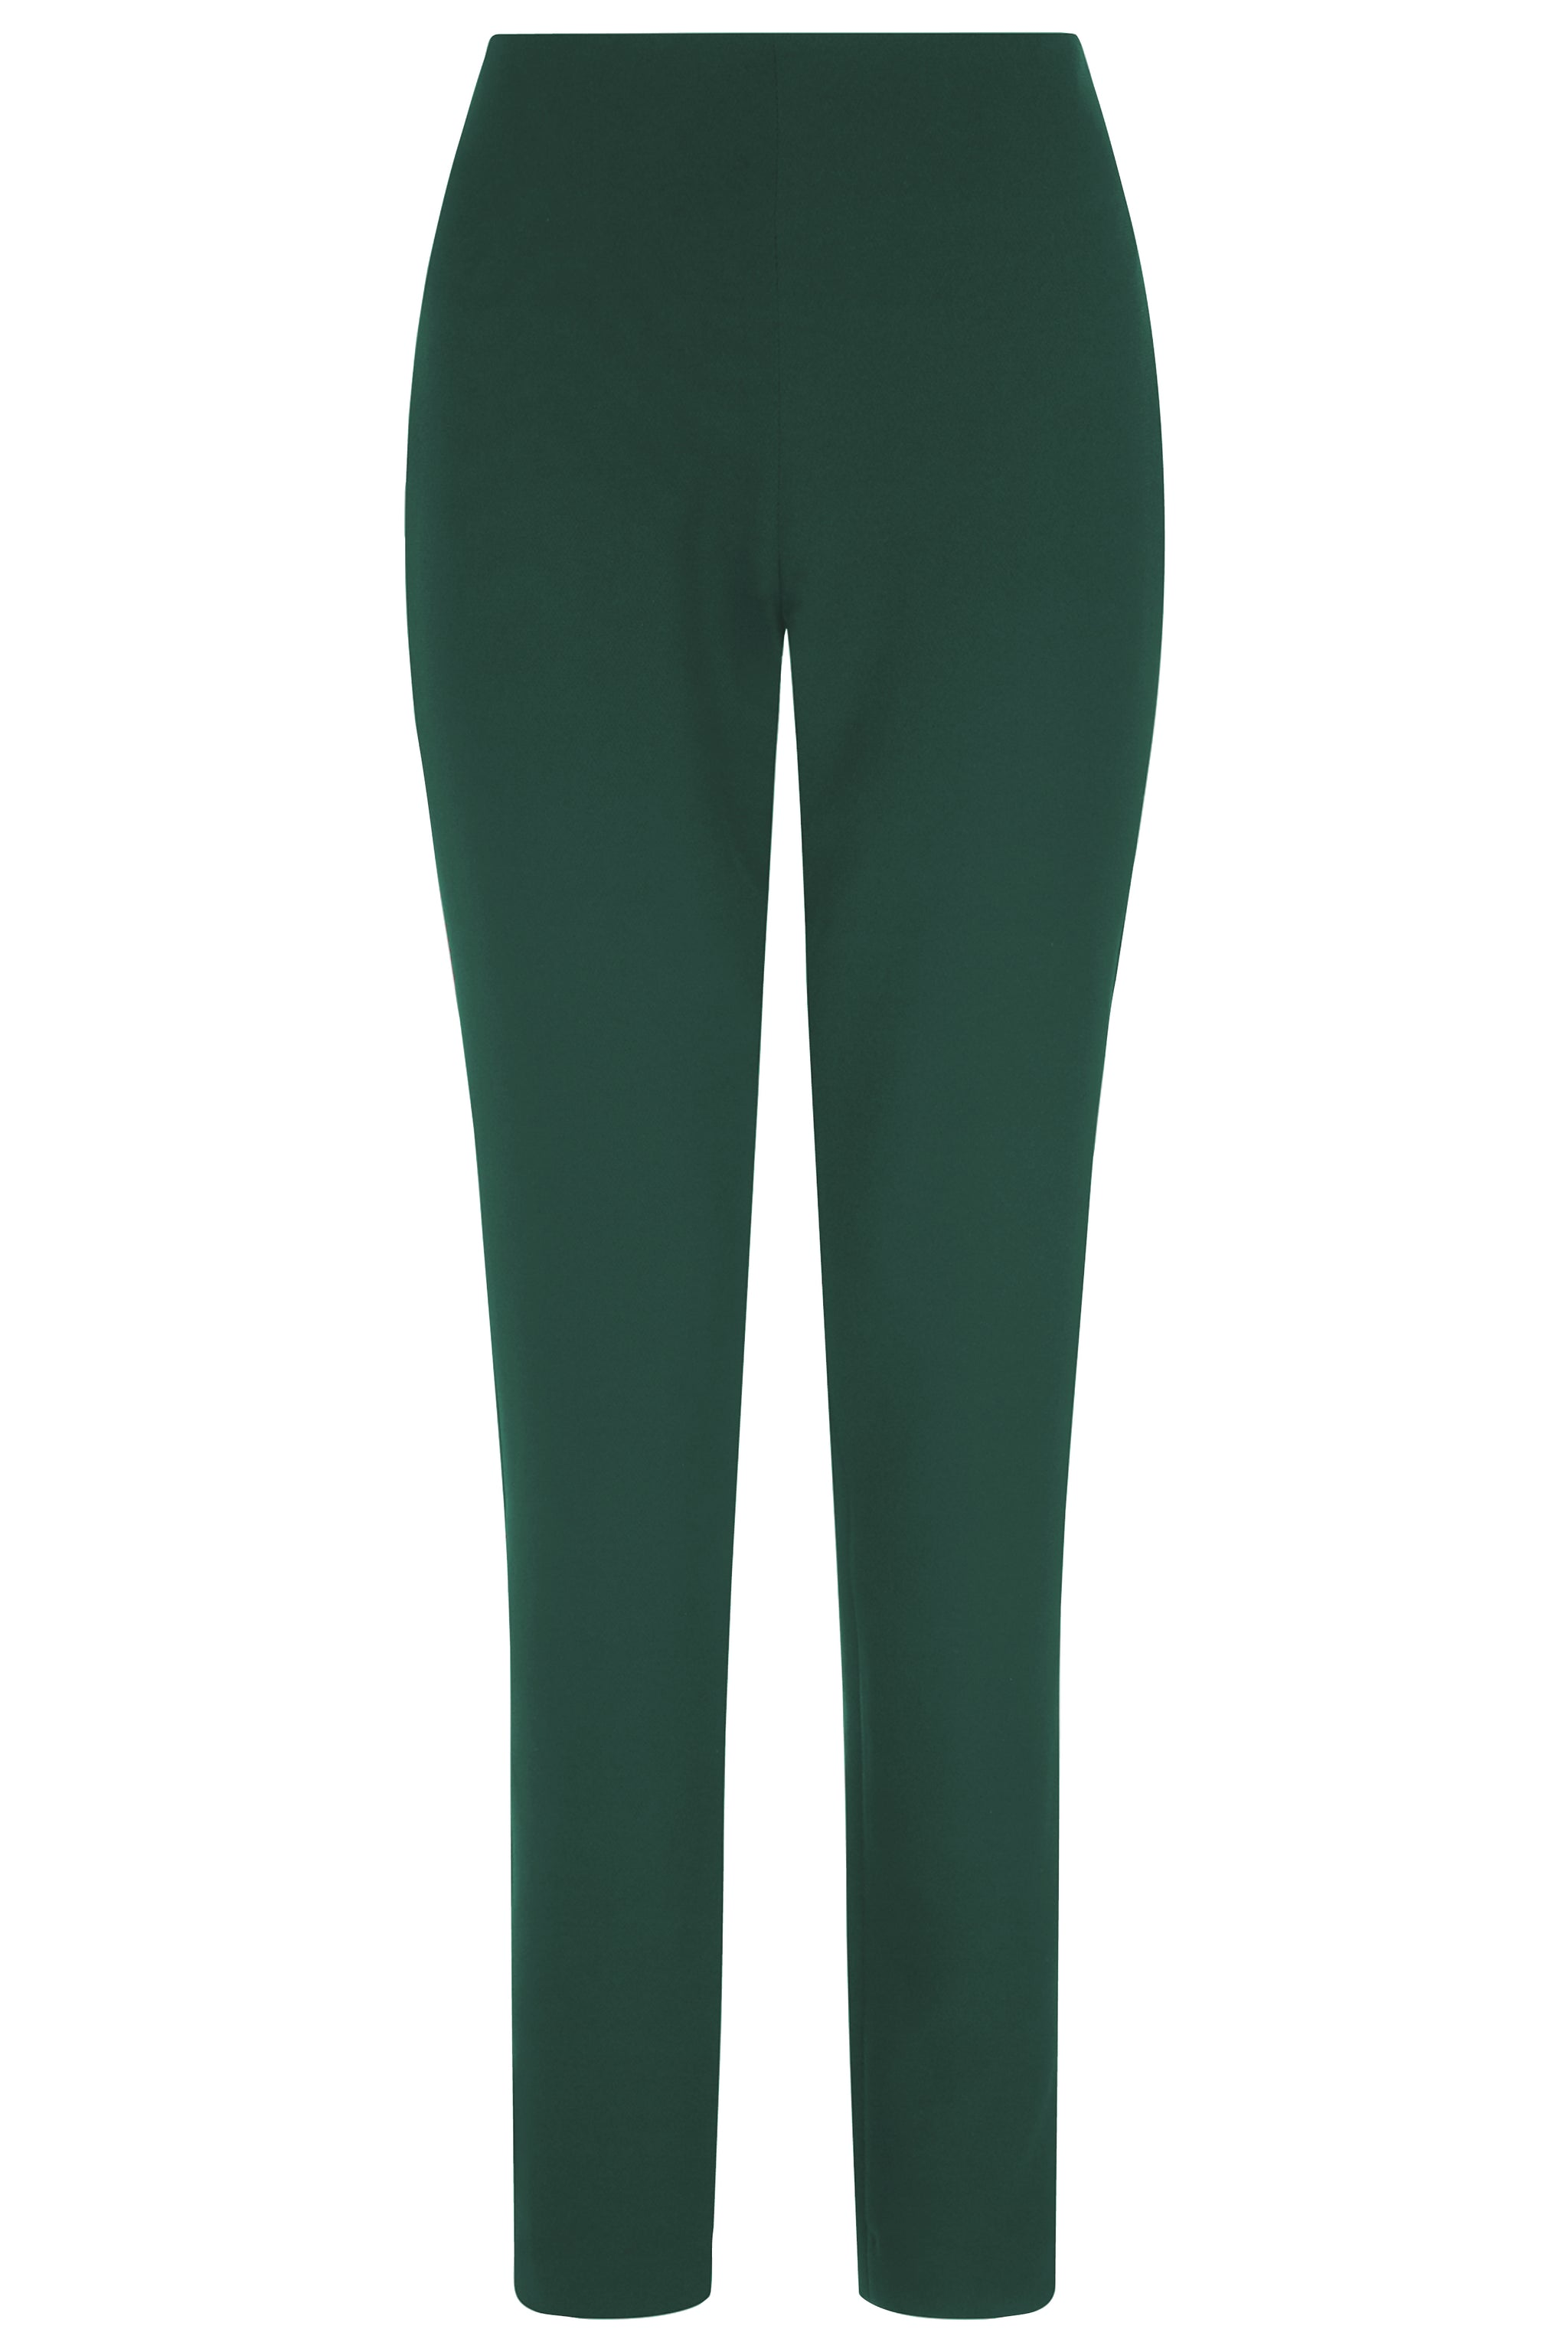 Brunswick Green Trousers